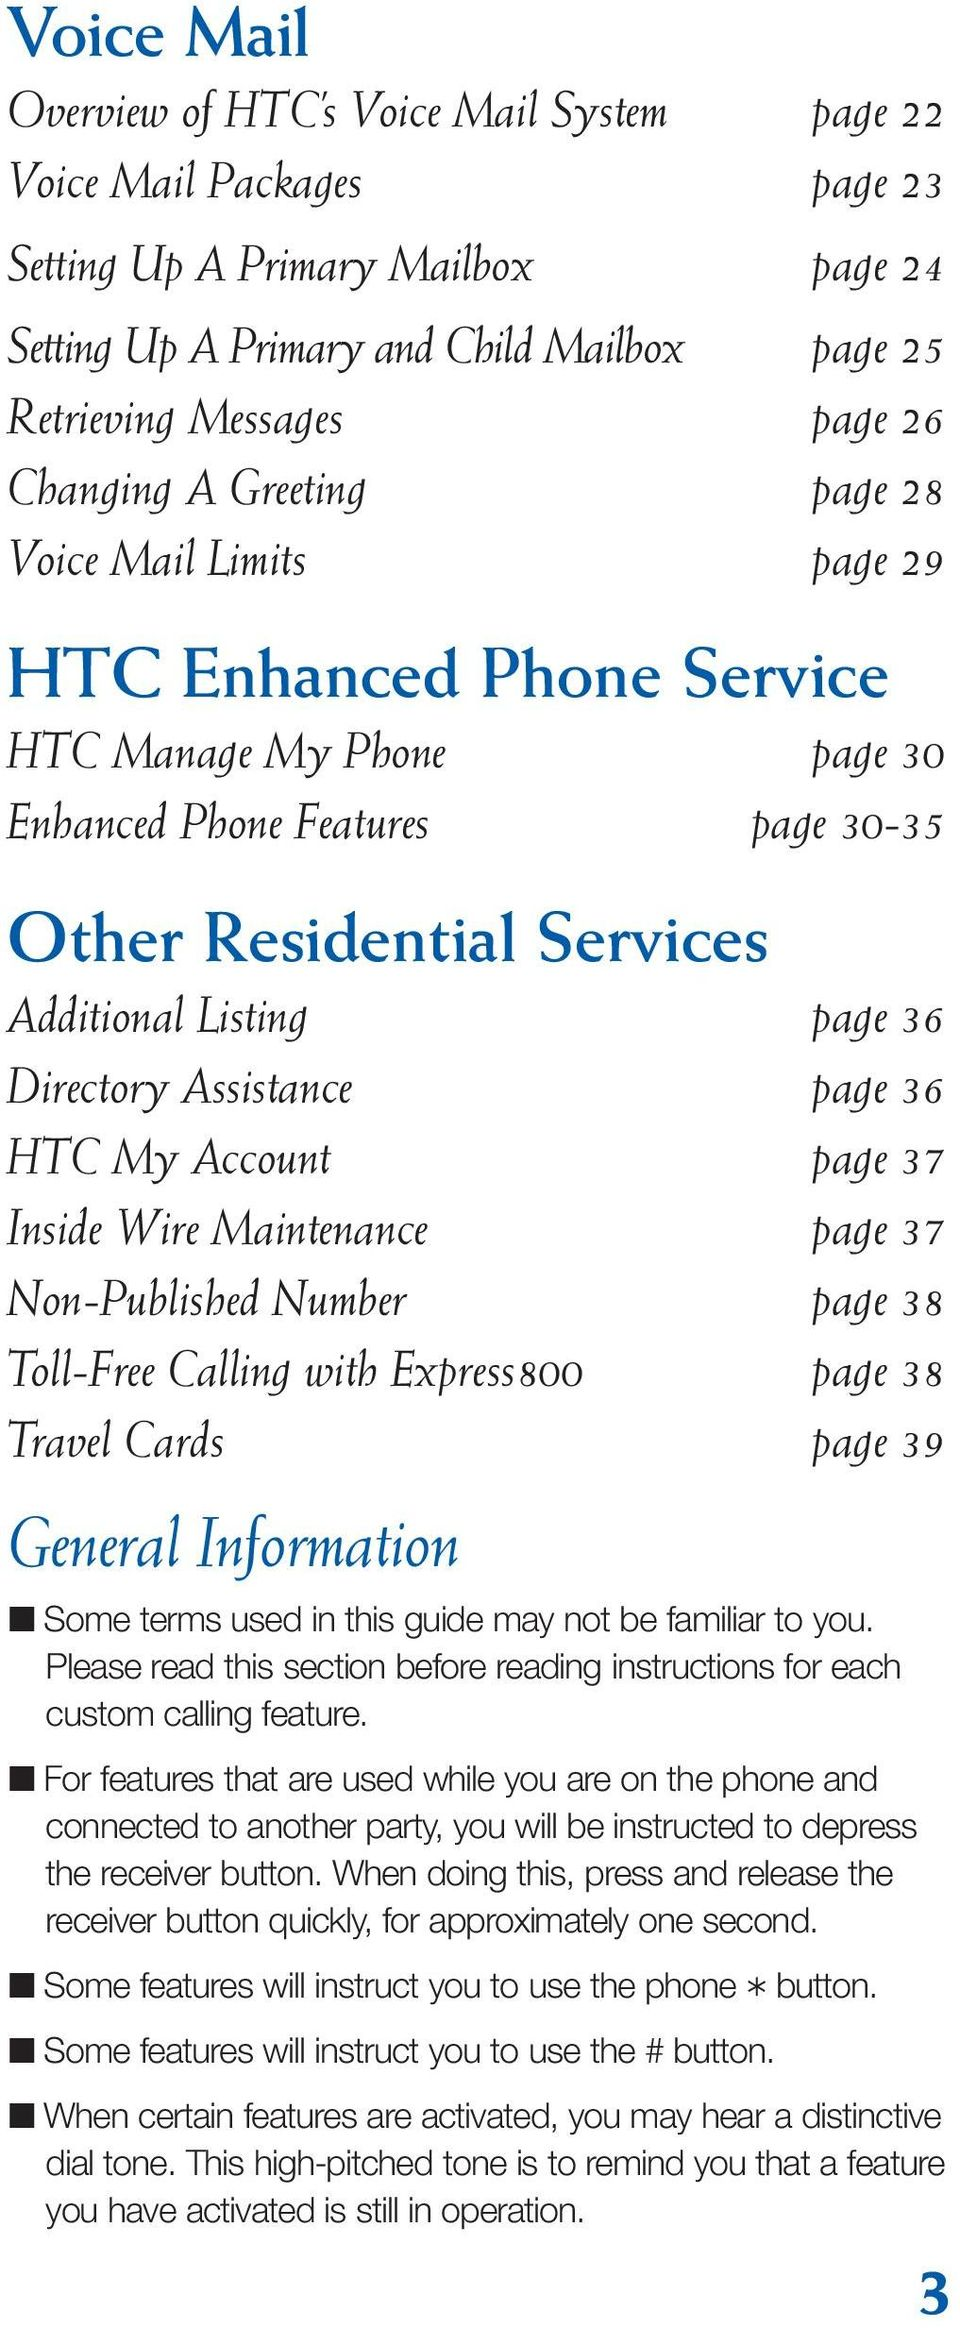 Directory Assistance page 36 HTC My Account page 37 Inside Wire Maintenance page 37 Non-Published Number page 38 Toll-Free Calling with Express800 page 38 Travel Cards page 39 General Information